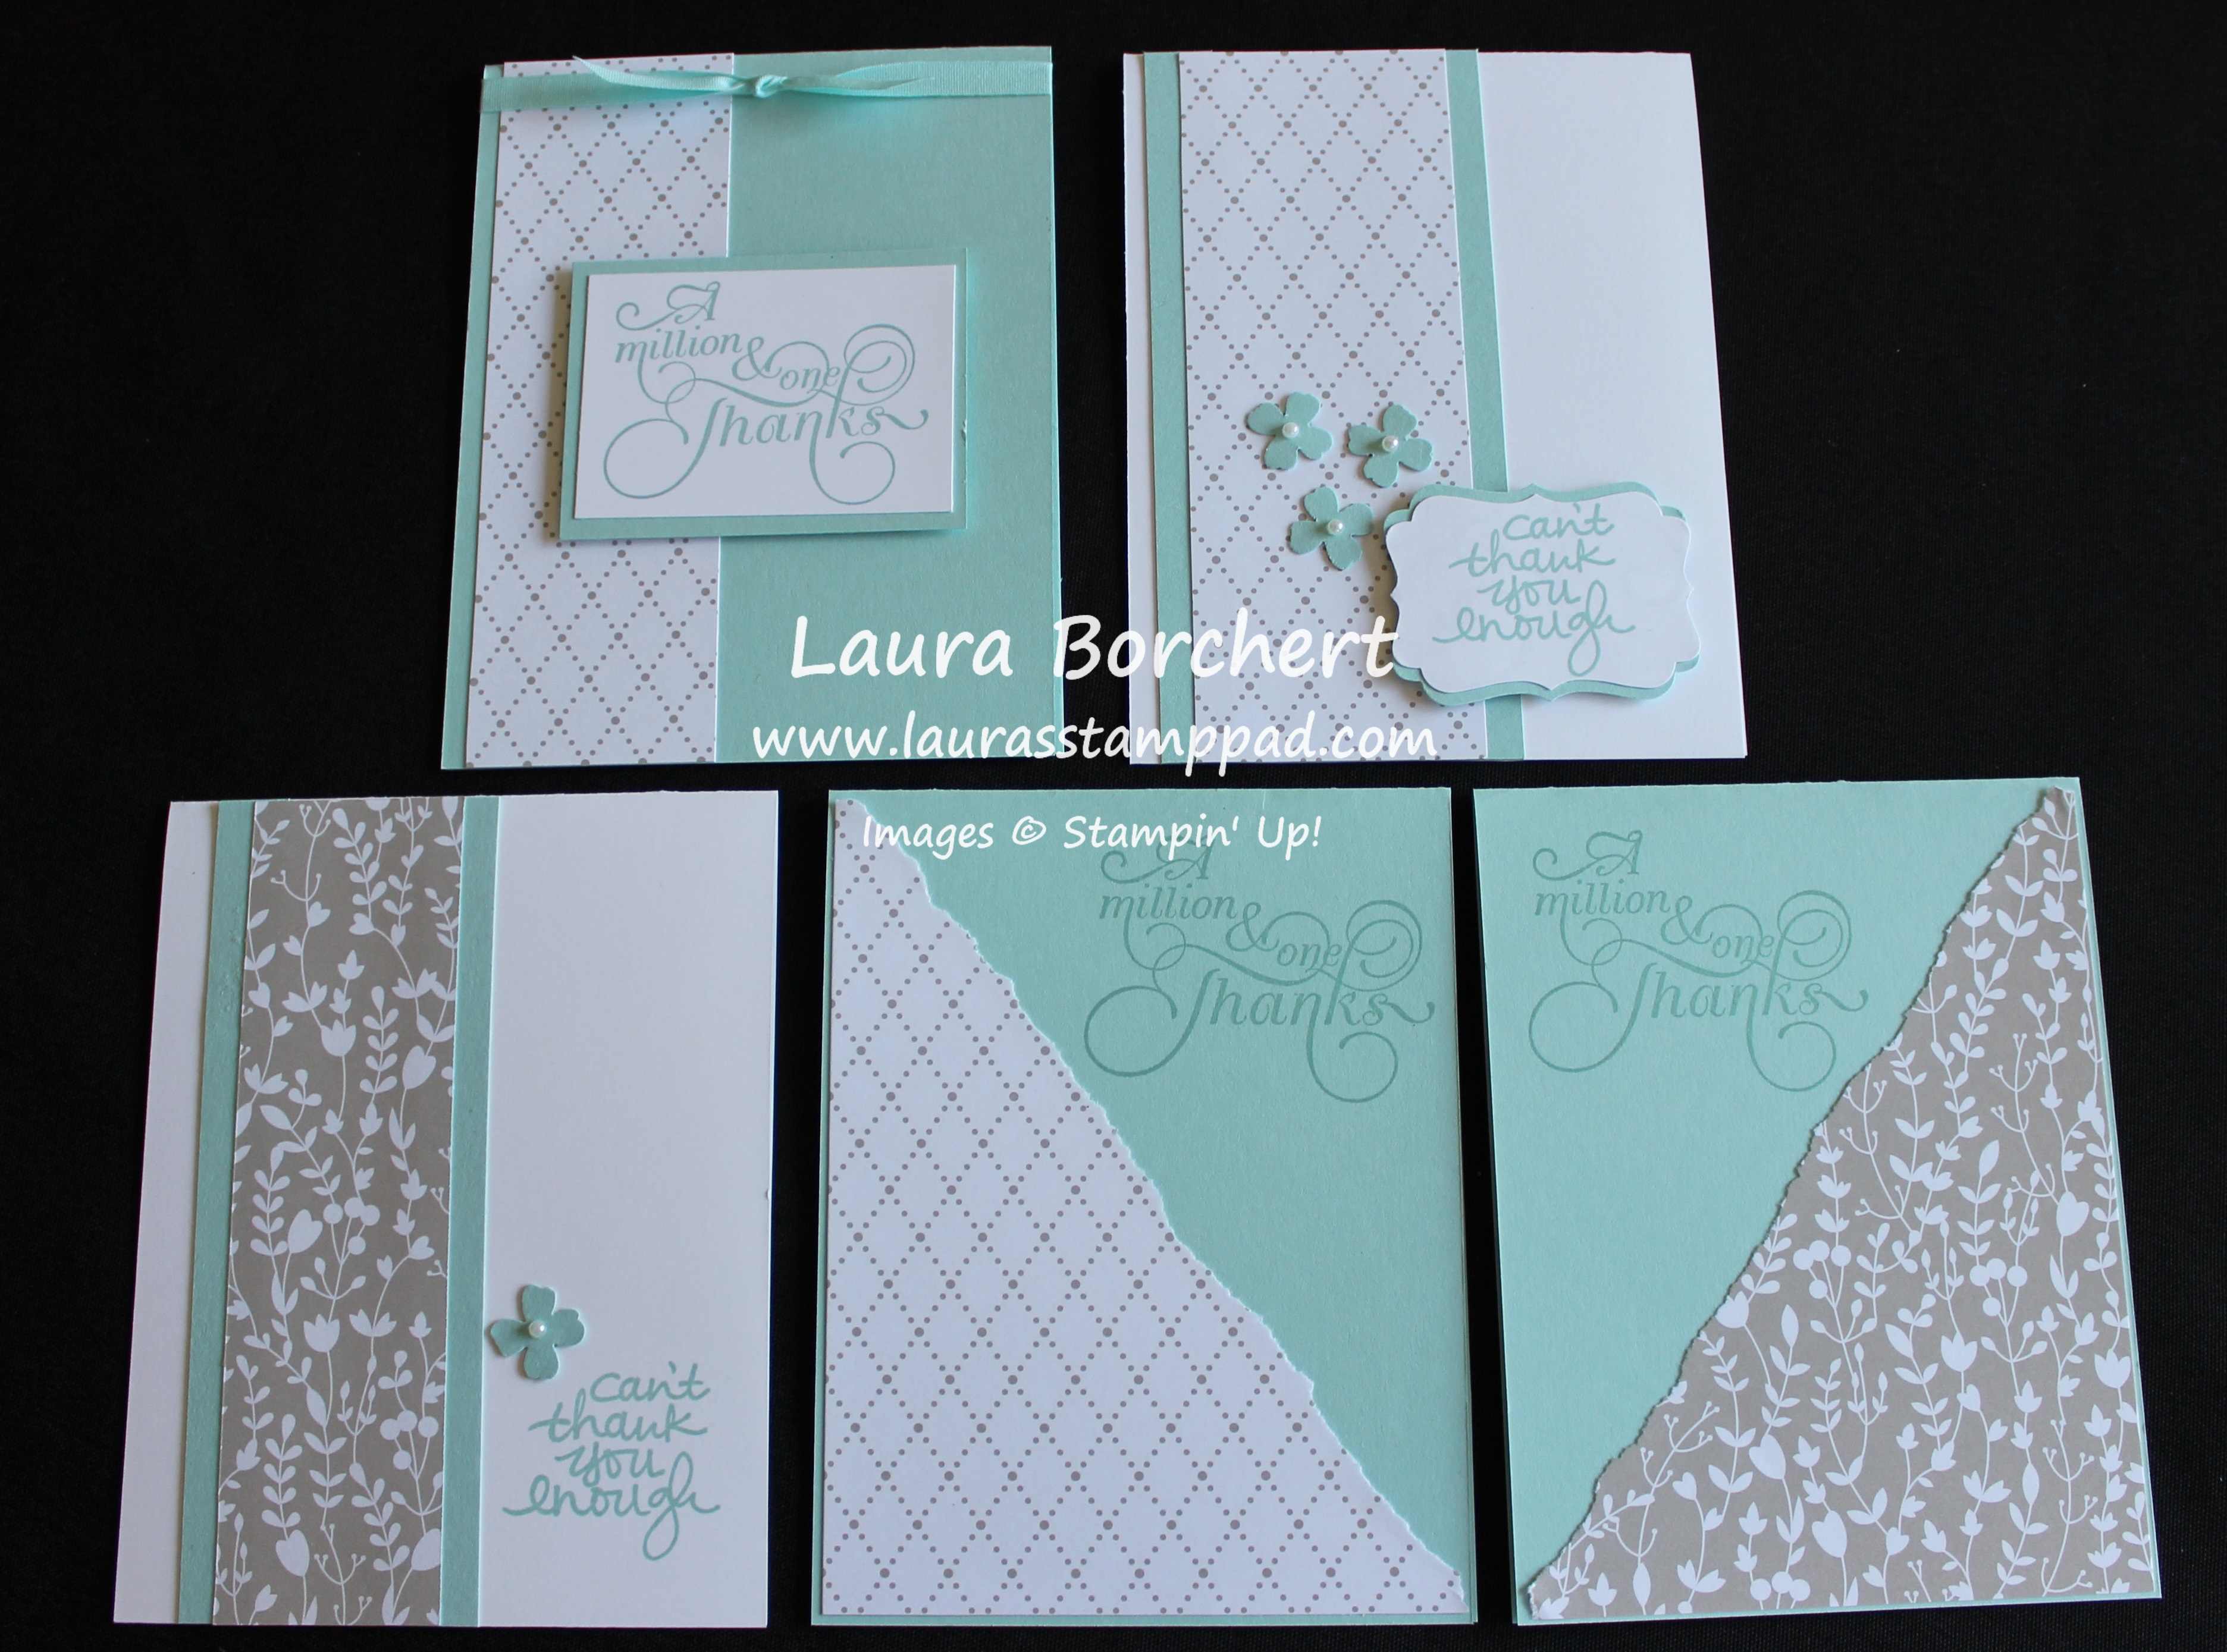 bridal shower thank you notes wwwlaurasstamppadcom